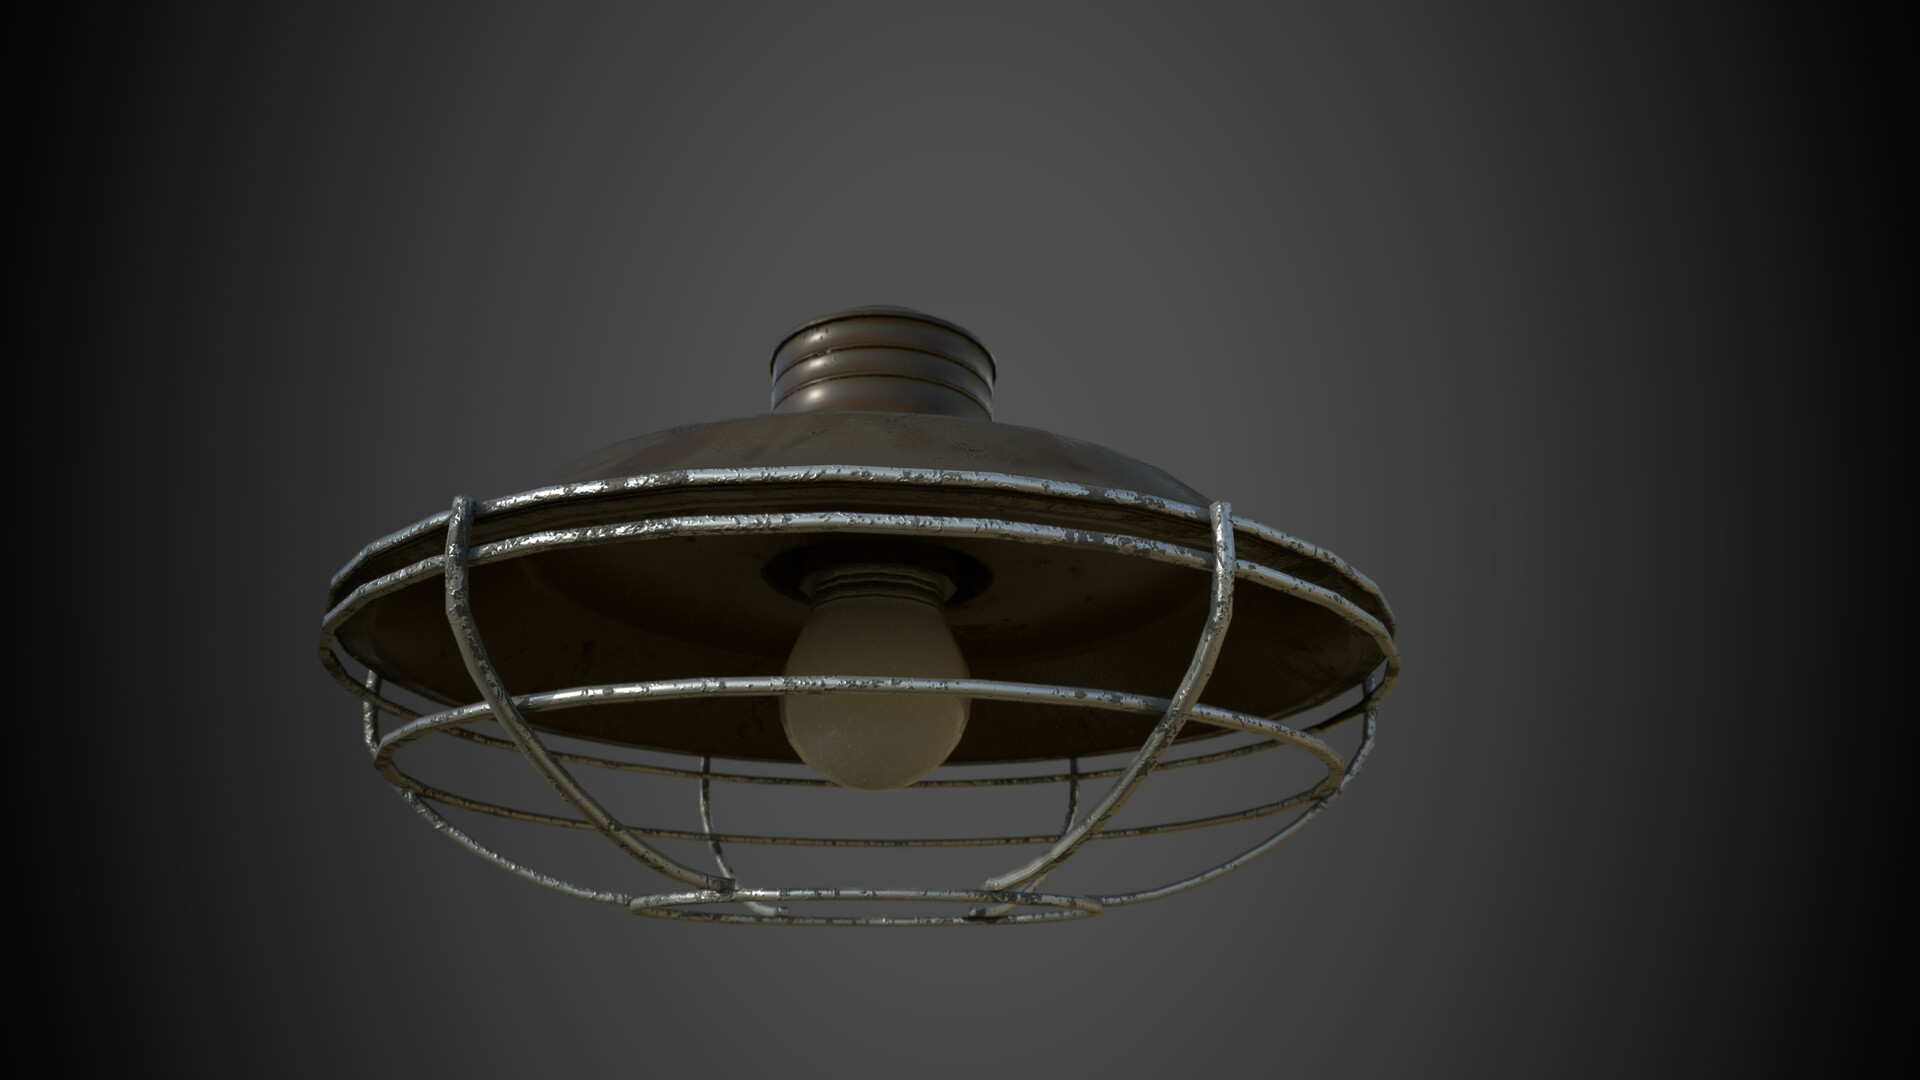 Hanging lamp - Rendered in Iray